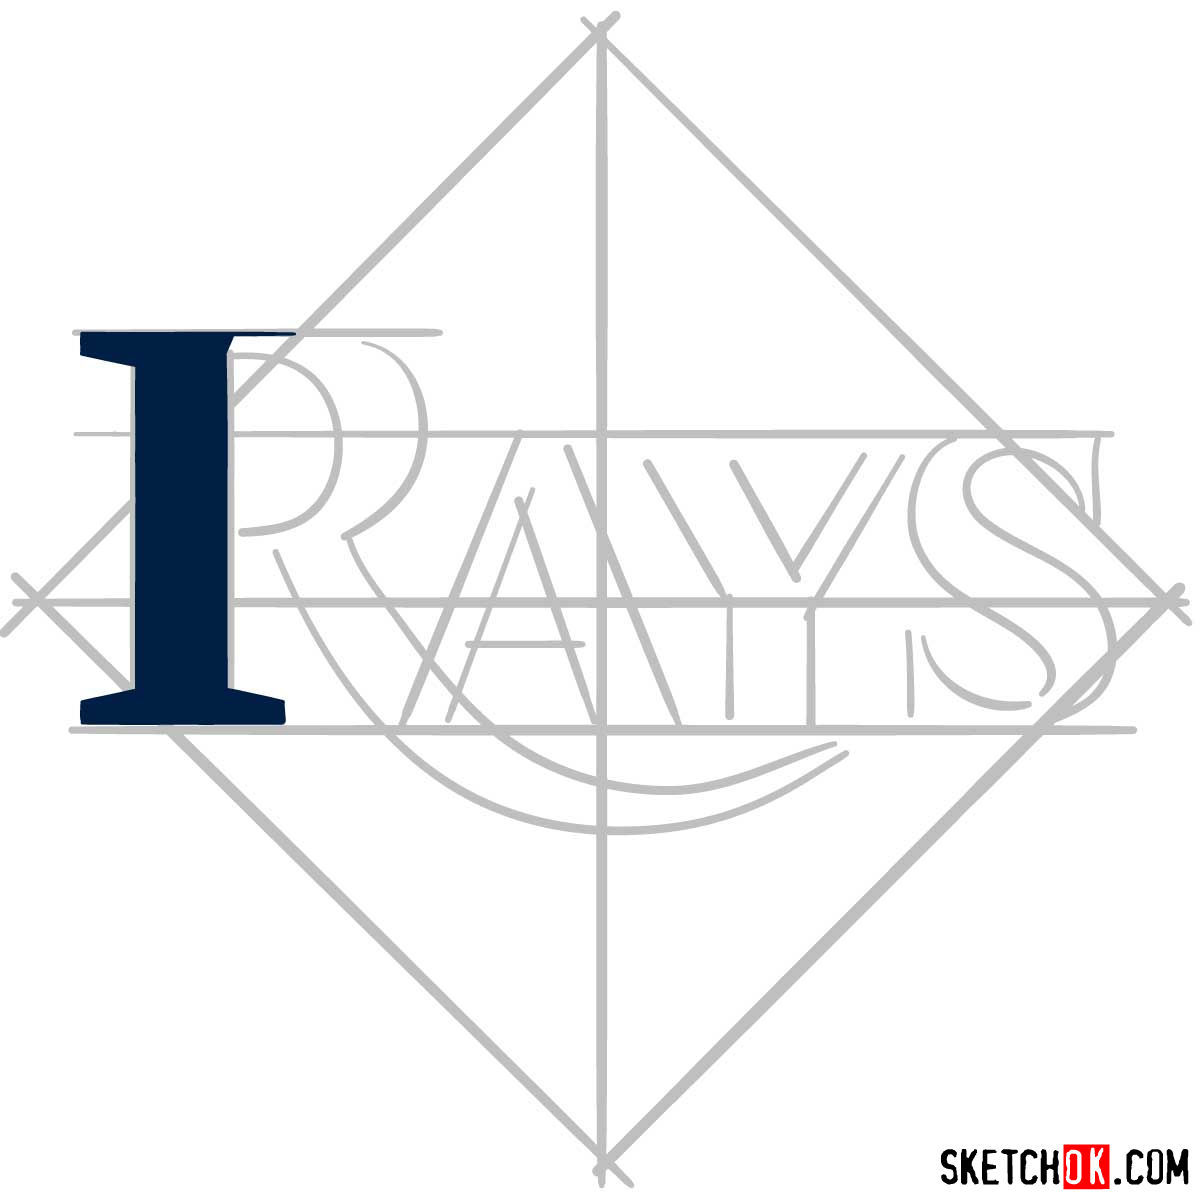 How to draw Tampa Bay Rays logo | MLB logos - step 03